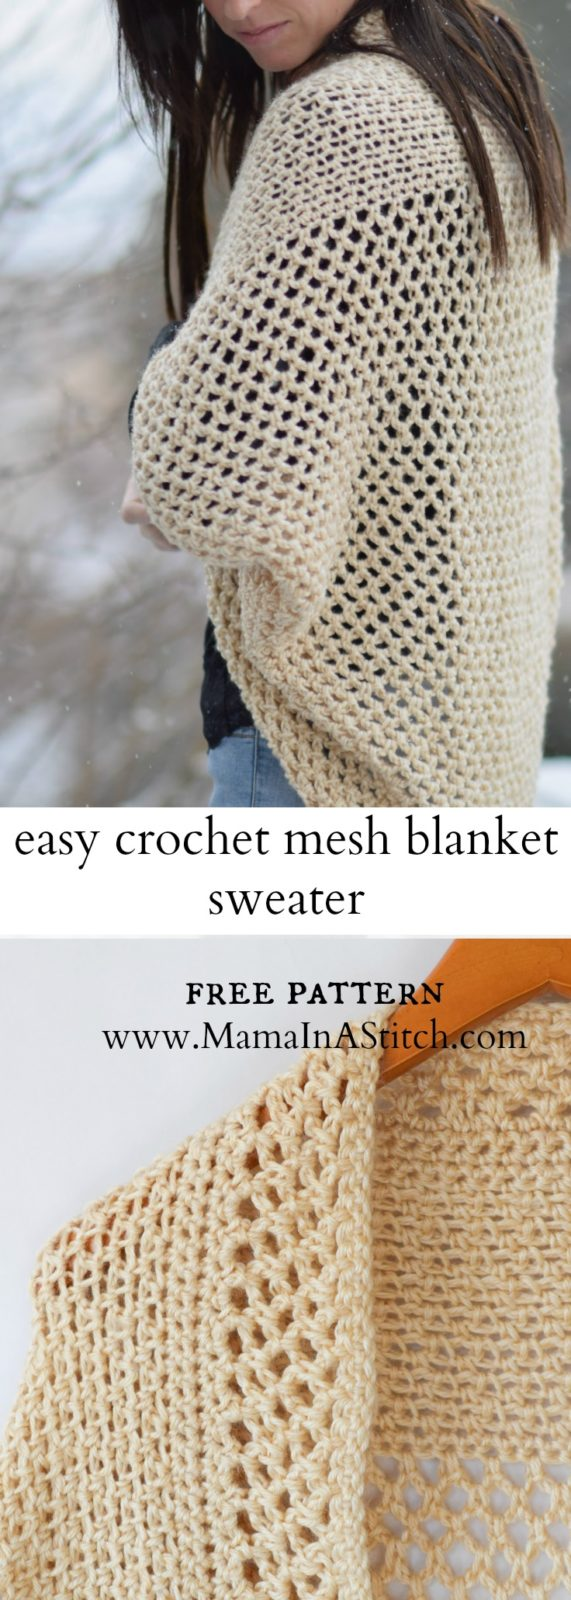 Mod Mesh Honey Blanket Sweater ? Mama In A Stitch